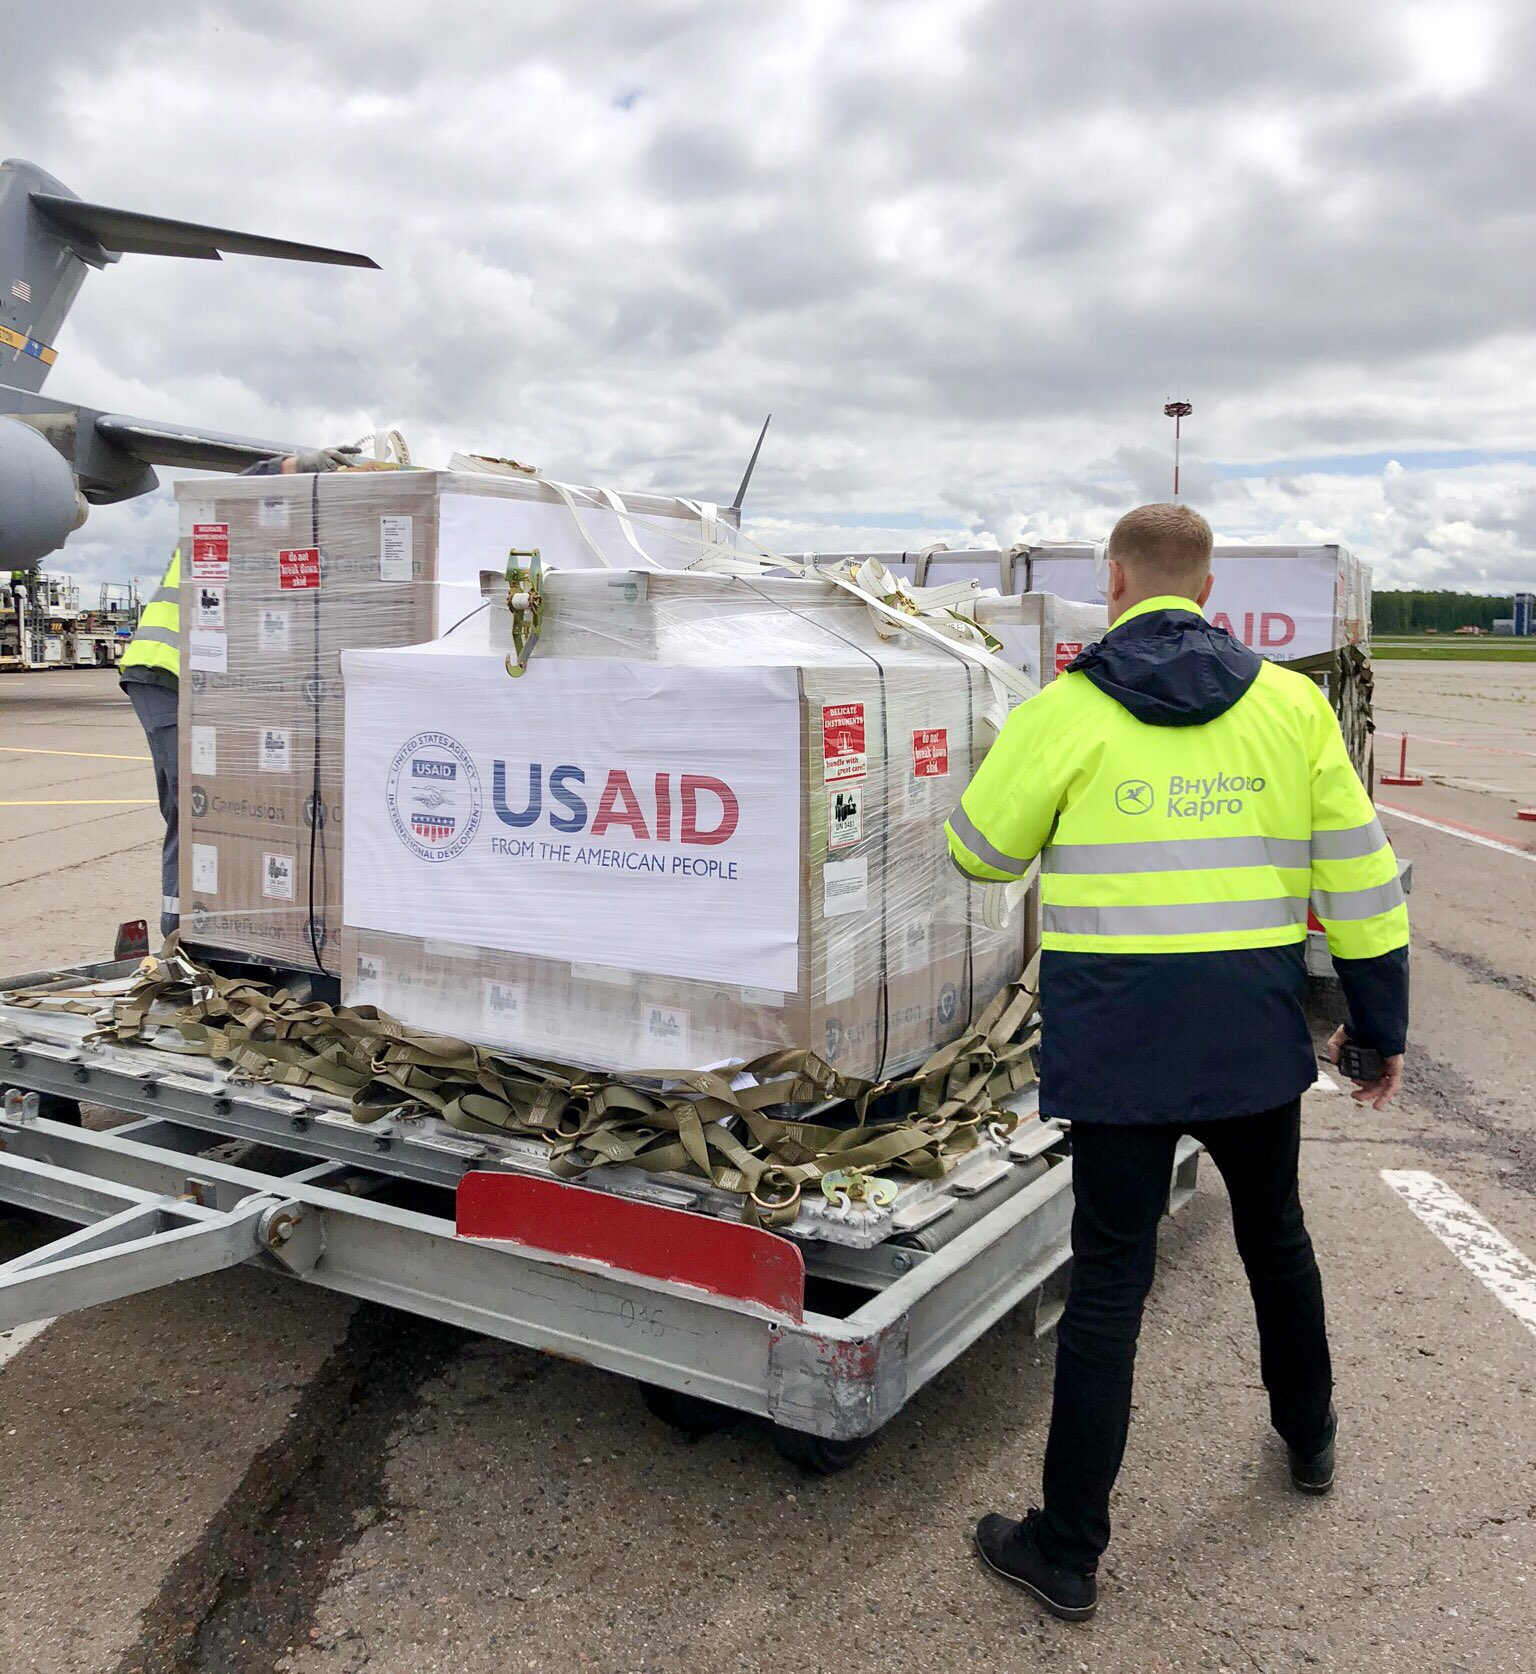 Rebecca Ross, spokesperson at the US Embassy in Moscow, posted this image on Twitter on June 4. It shows a shipment of US-made ventilators arriving in Russia, according to Ross.